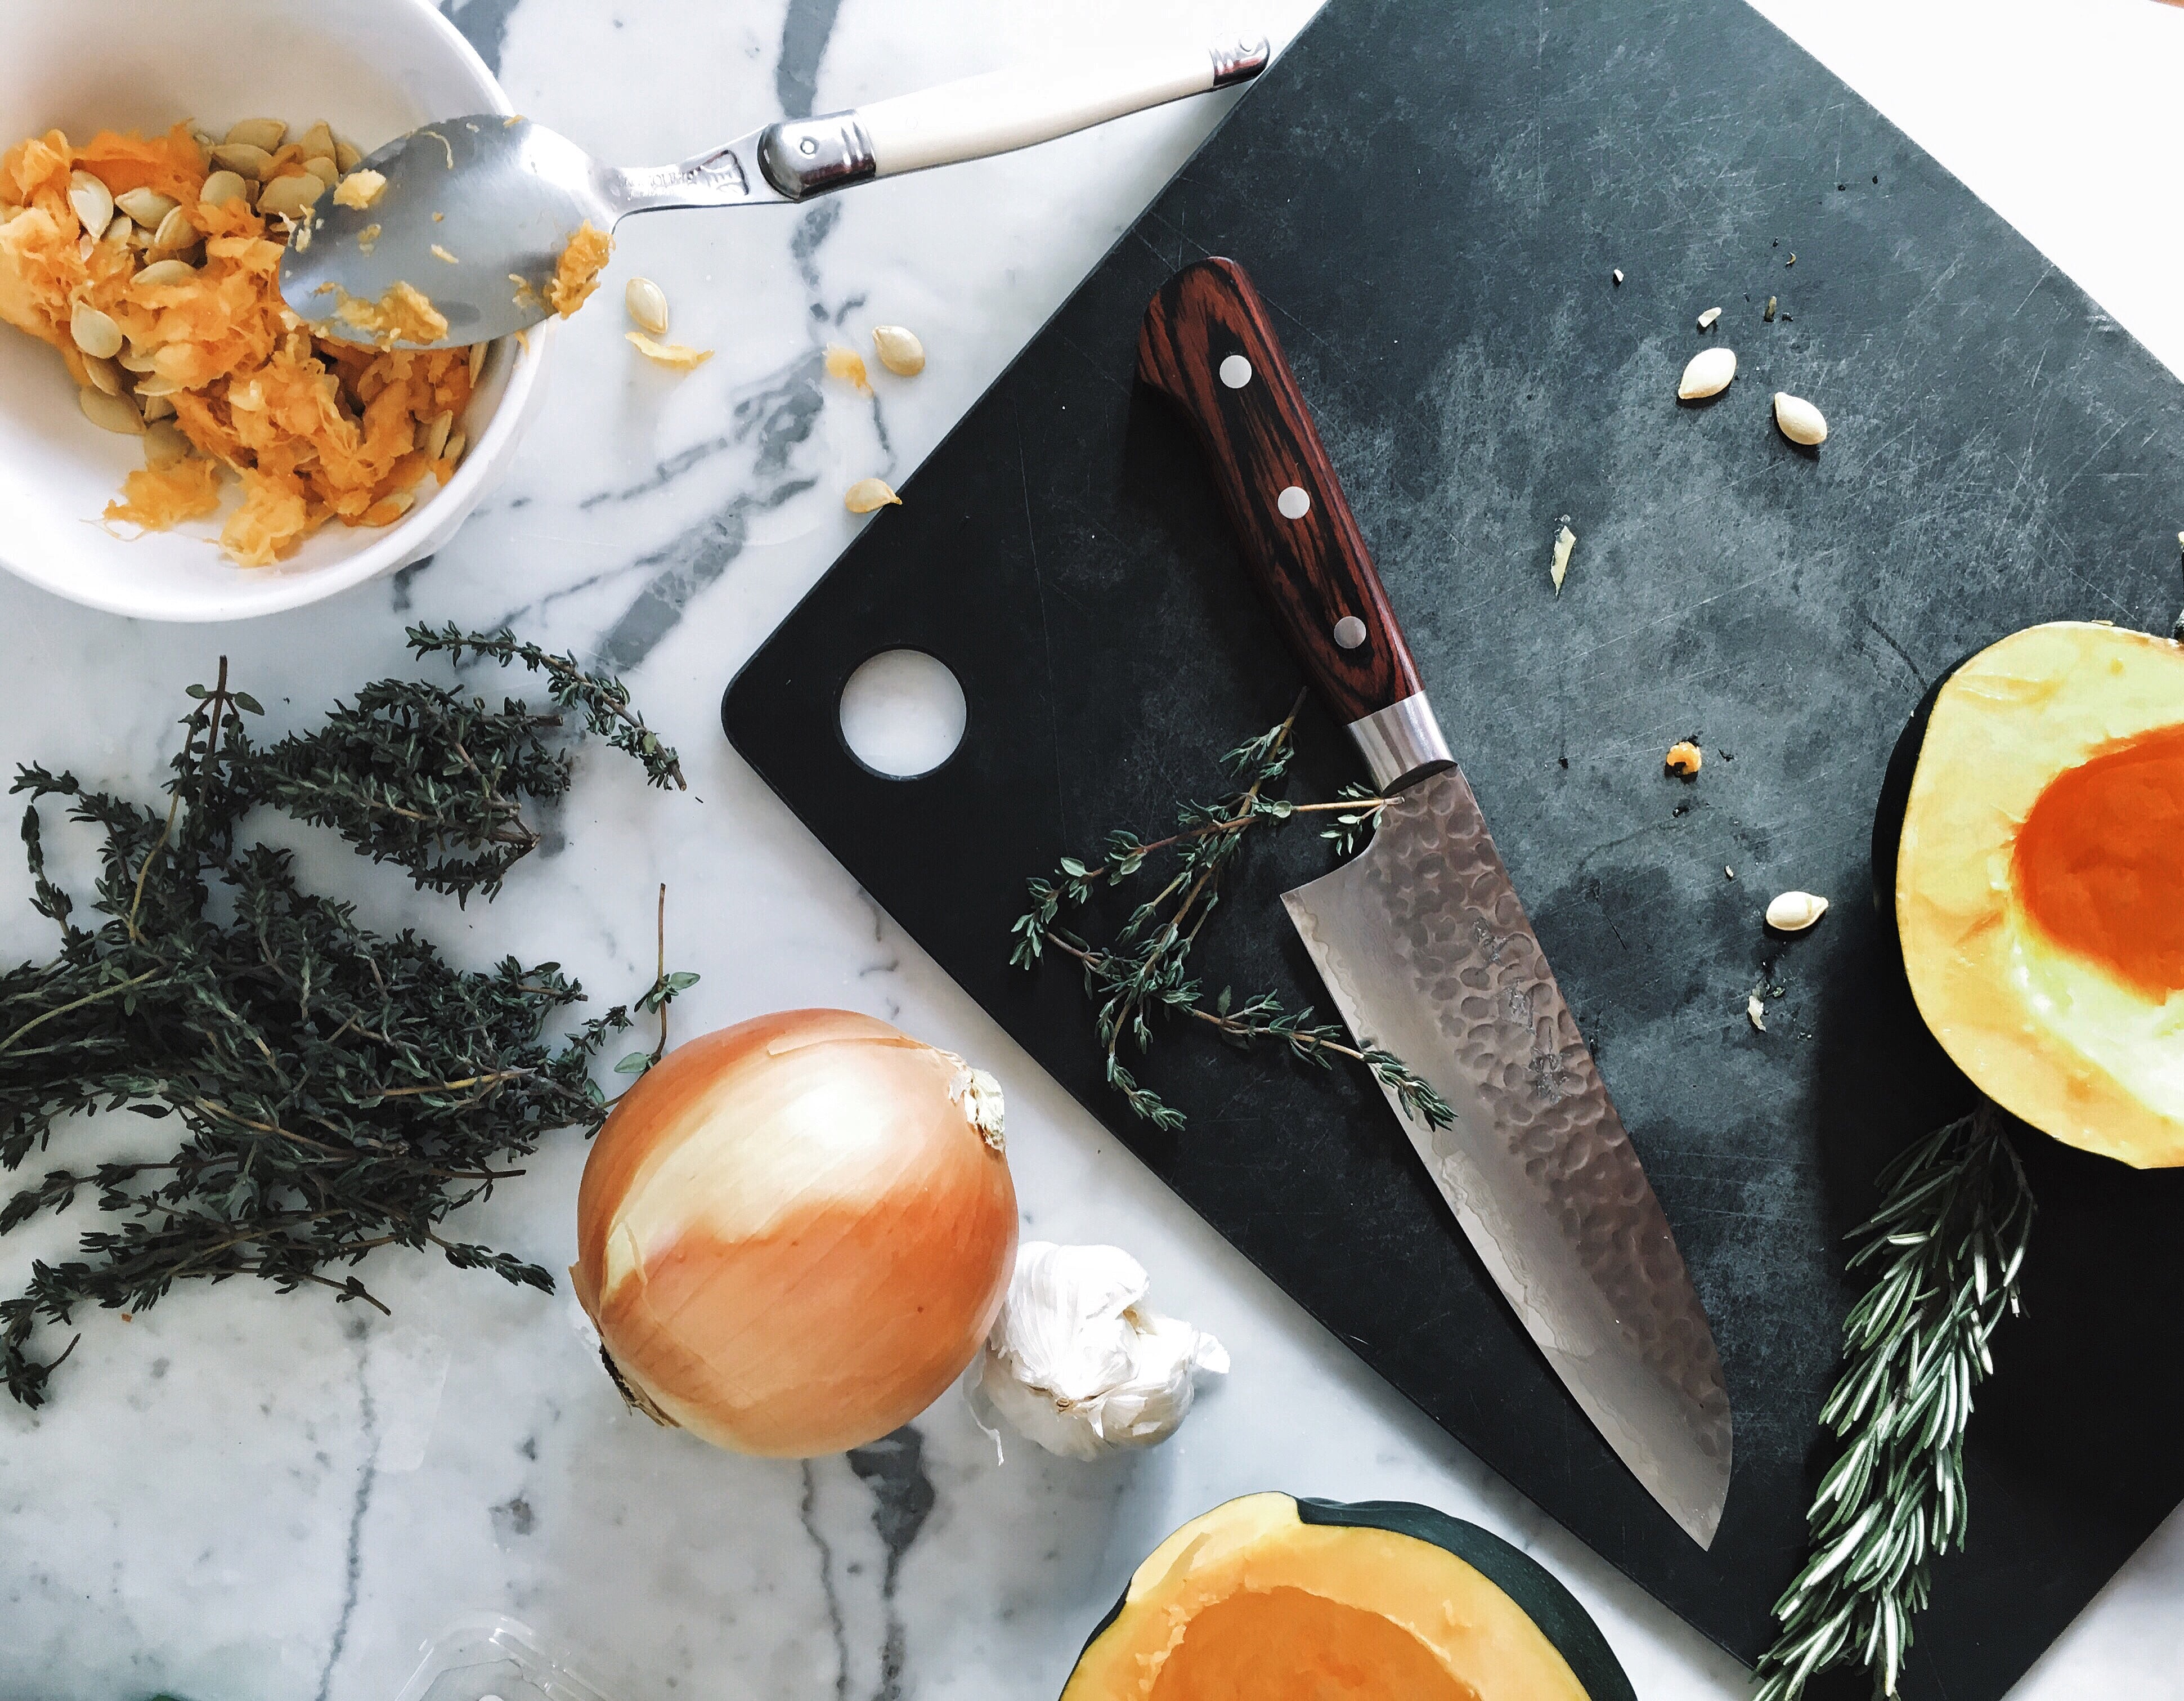 Vegan Stuffed Acorn Squash by The Conscious Collective